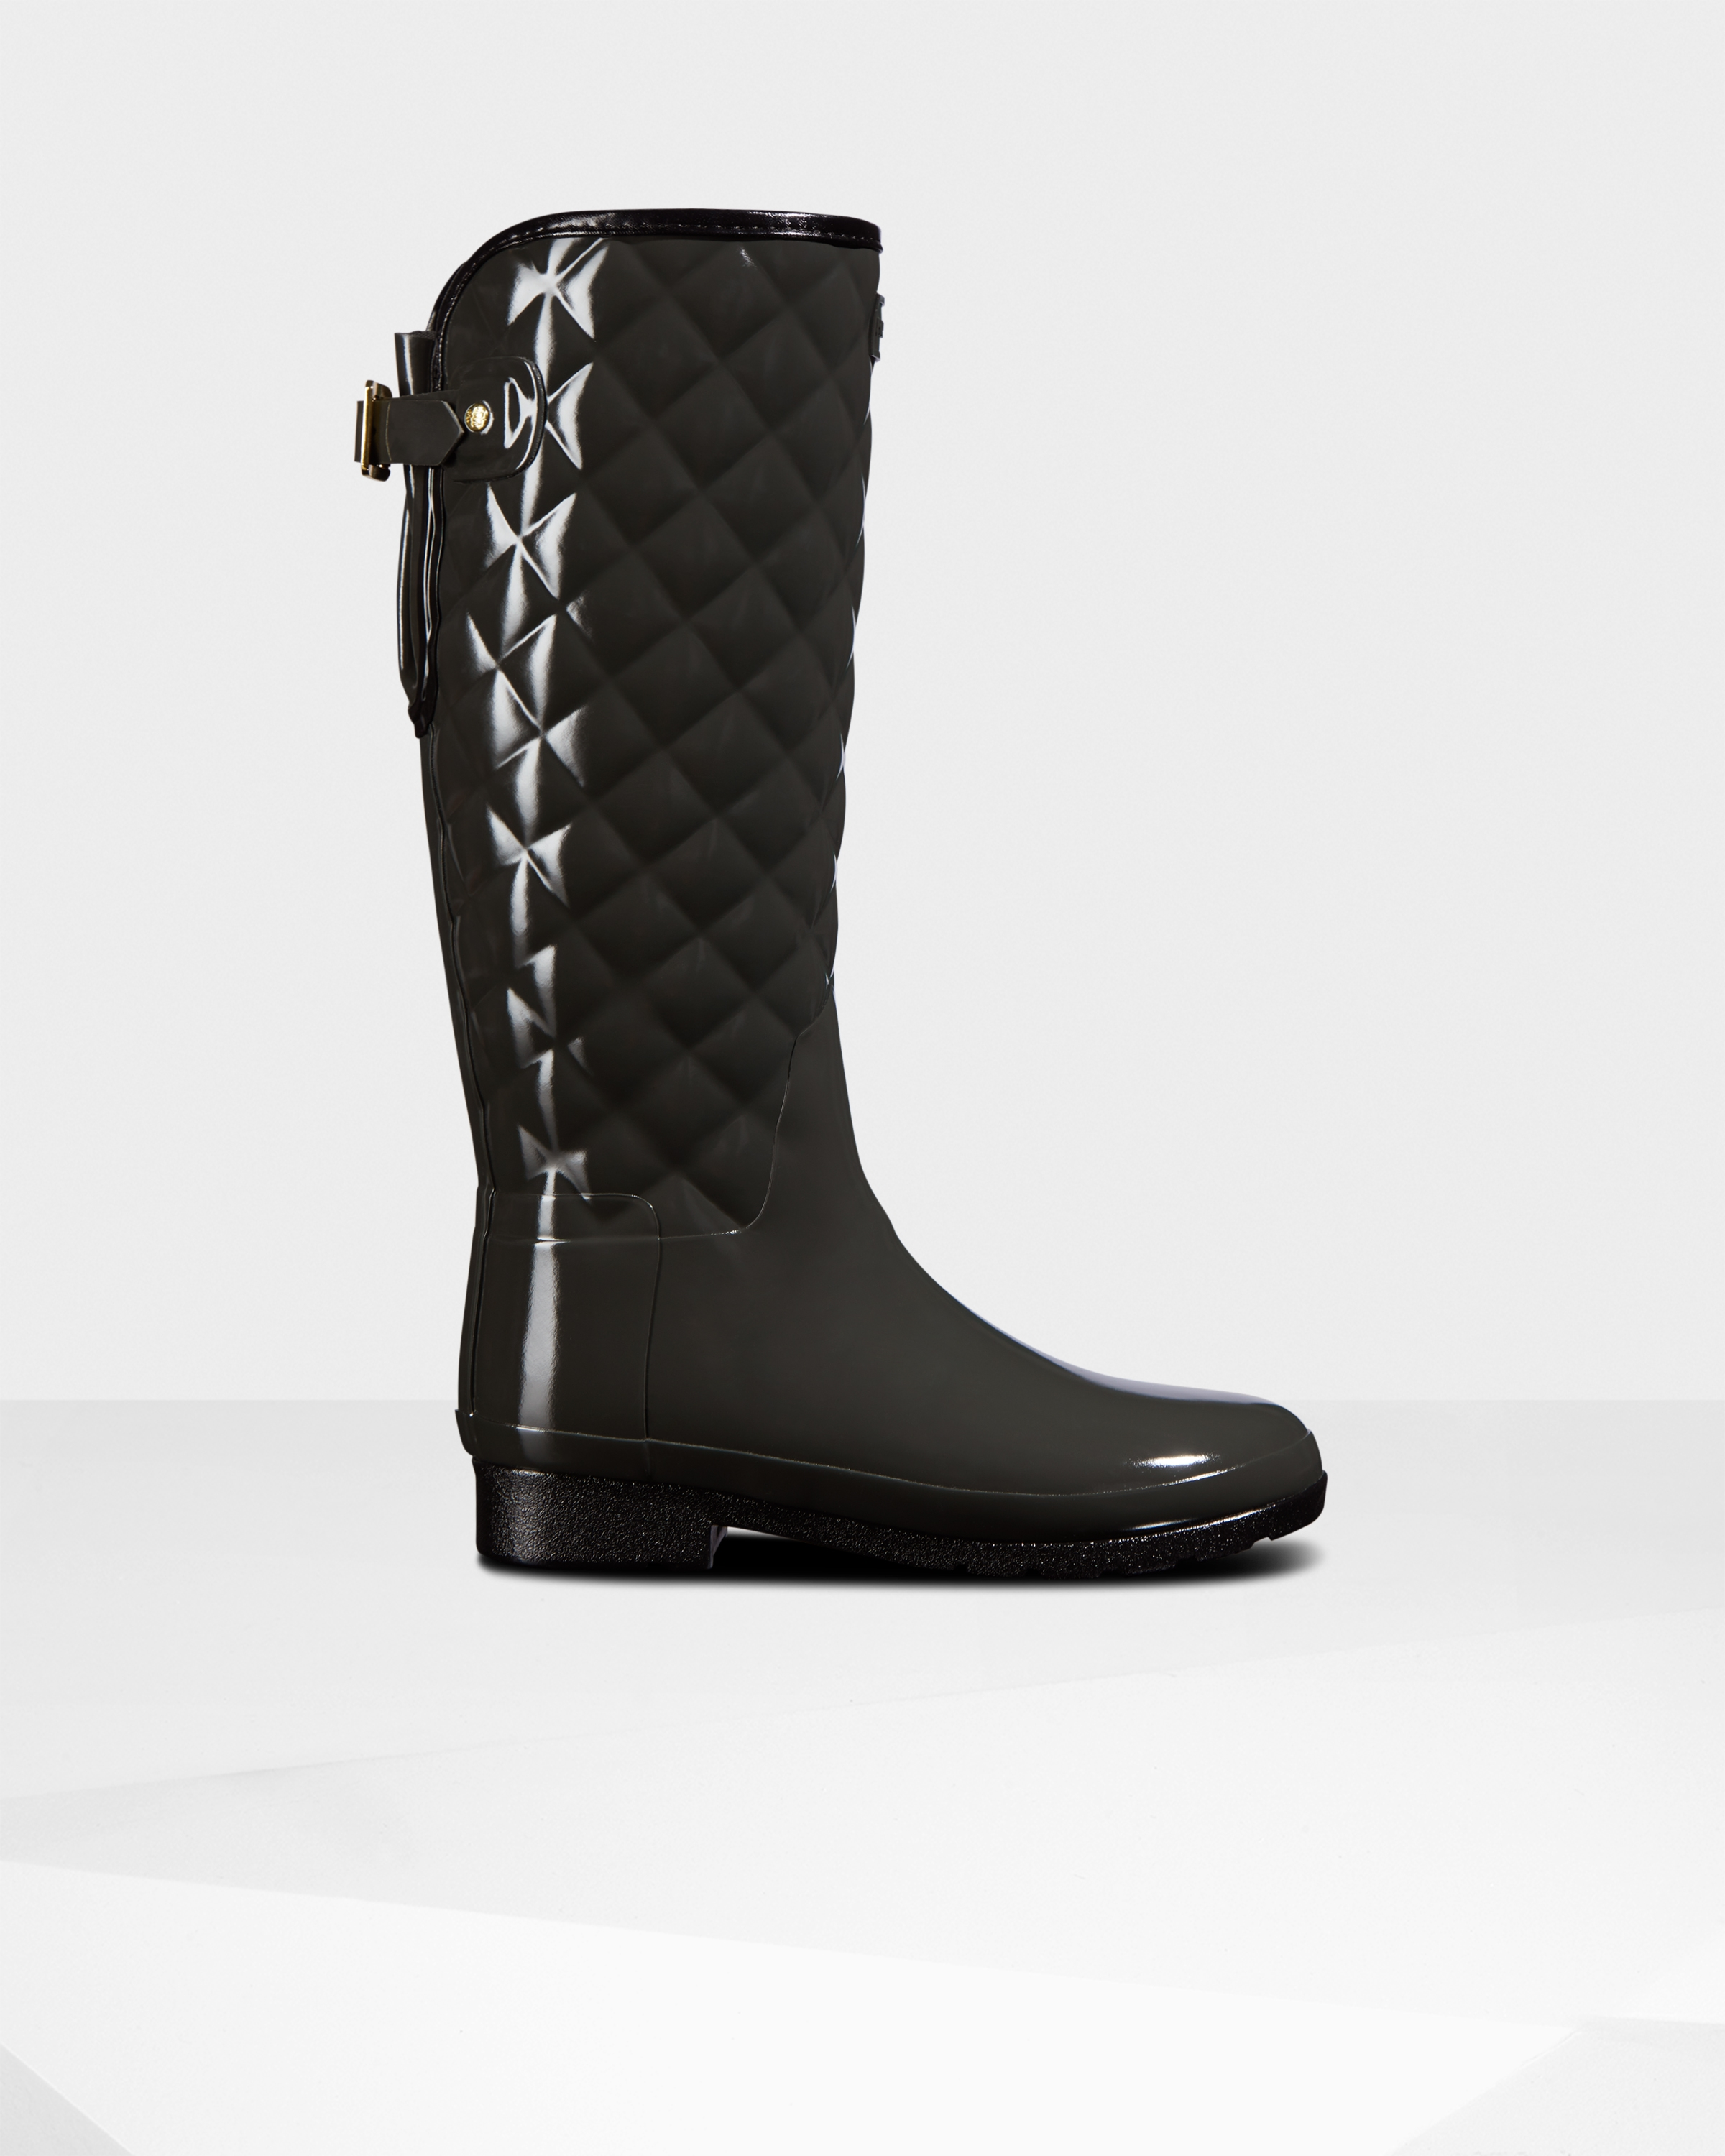 Women's Refined Slim Fit Adjustable Quilted Tall Rain Boots: Tarn Dark Grey   Official Hunter Boots Store